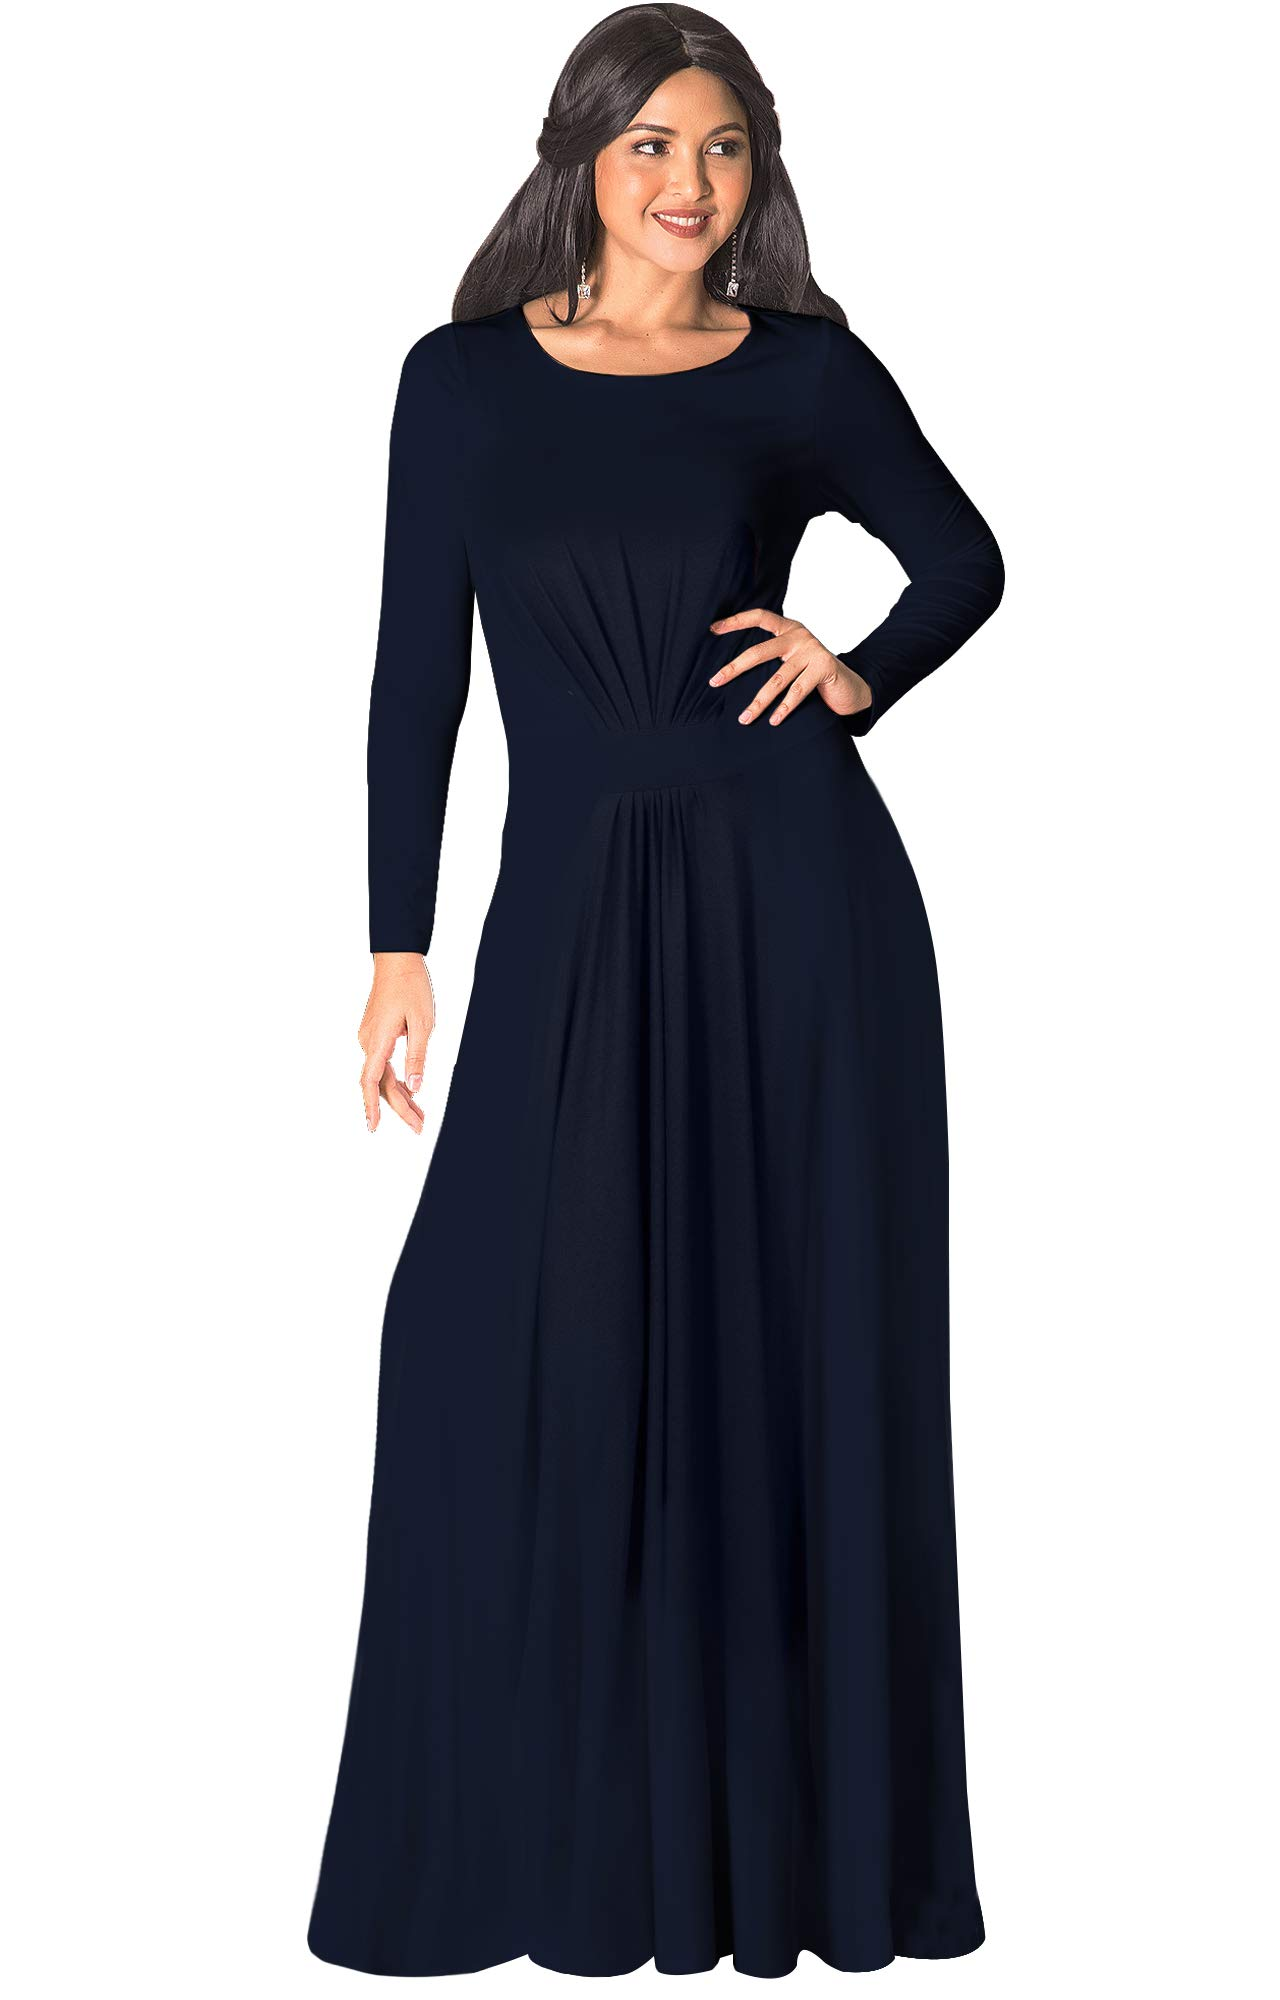 Available at Amazon: KOH KOH Sleeve Flowy Empire Waist Fall Winter Party Gown